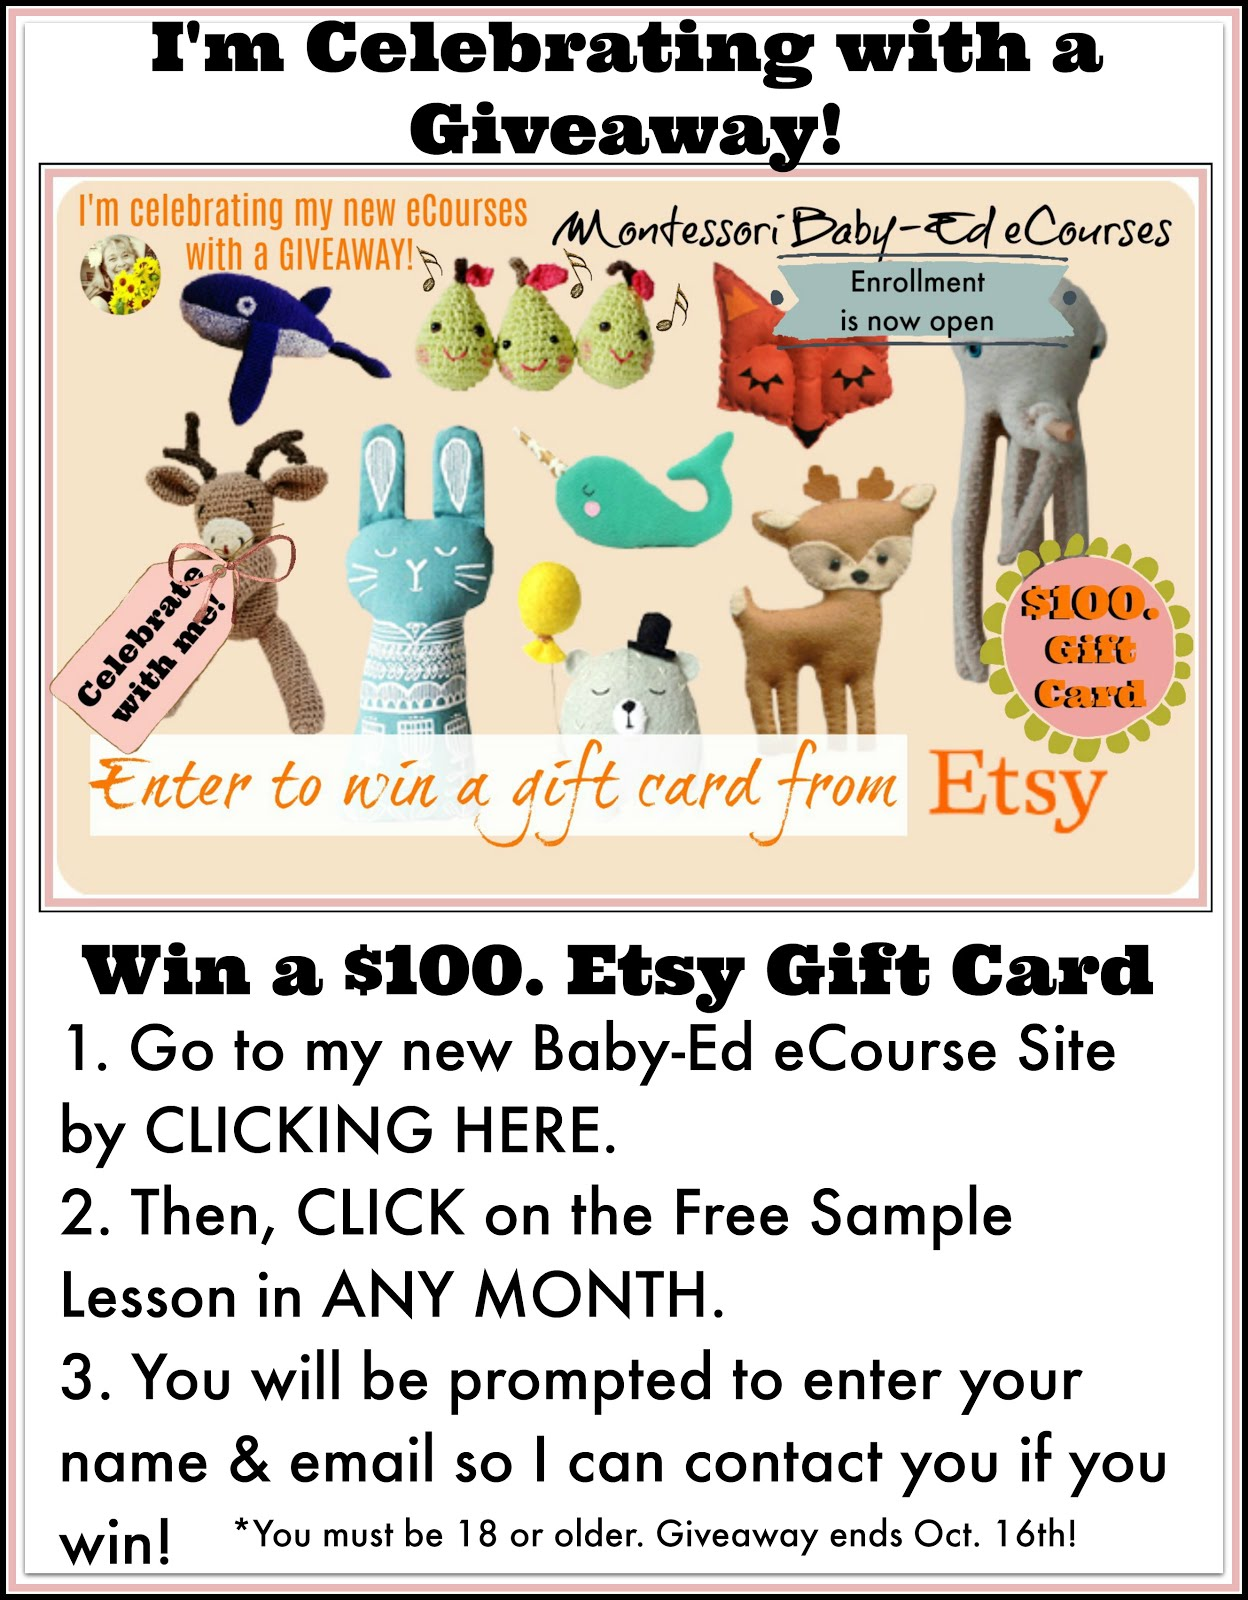 $100. Etsy Gift Card Giveaway